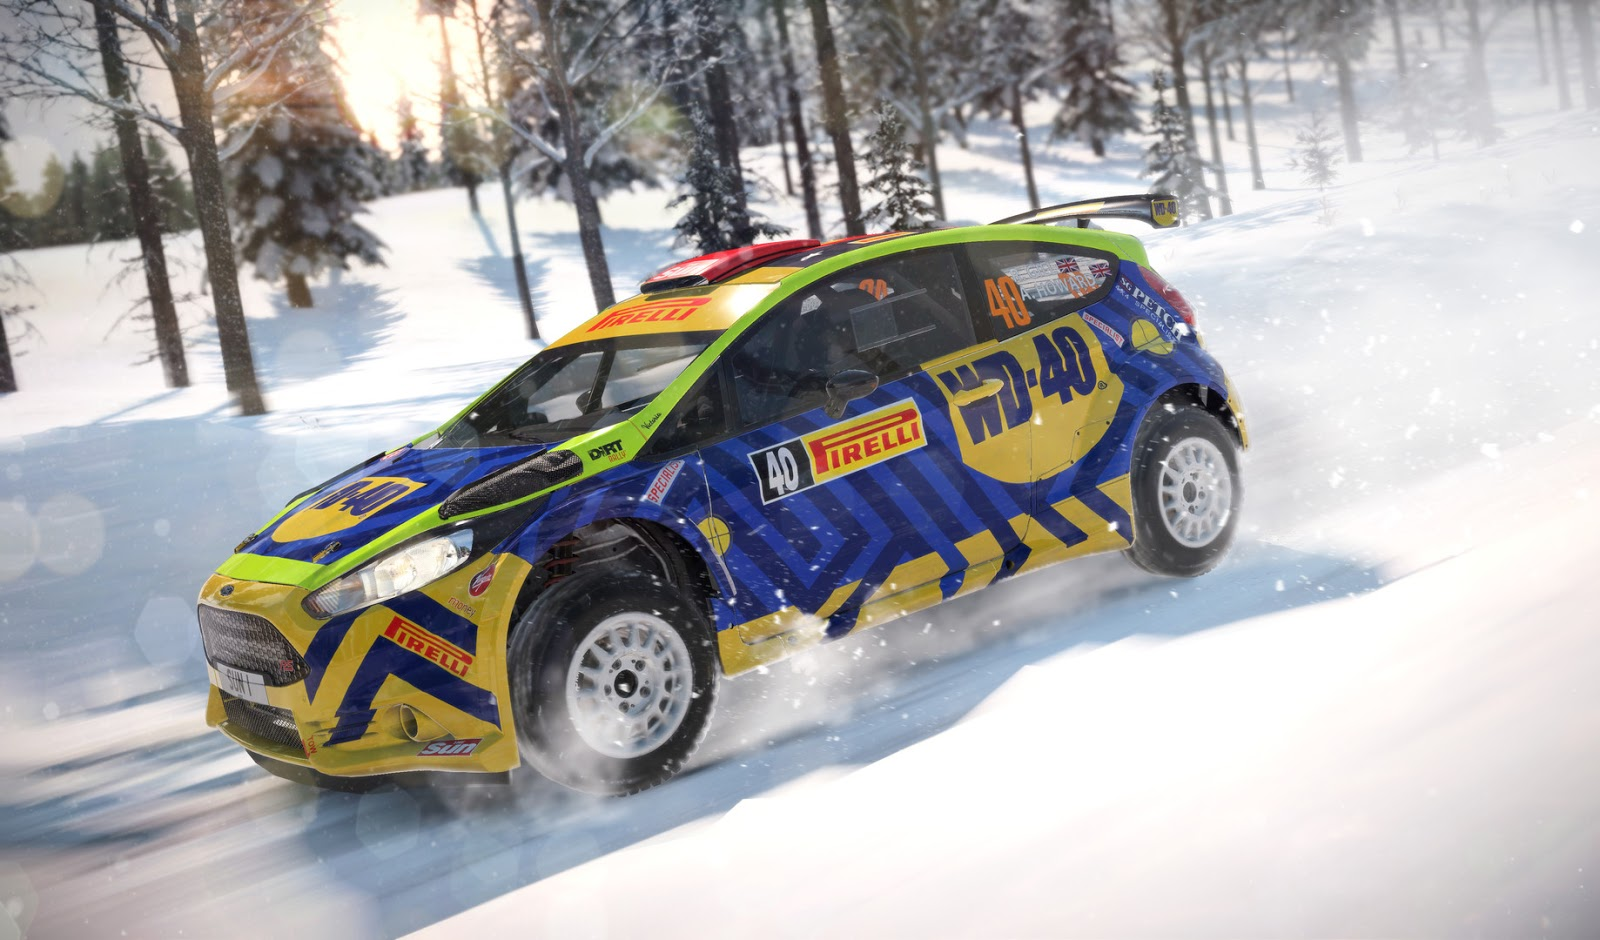 DiRT 4 ESPAÑOL PC (RELOADED) + Update v1.06 (BAT) + REPACK 5 DVD5 (JPW) 7